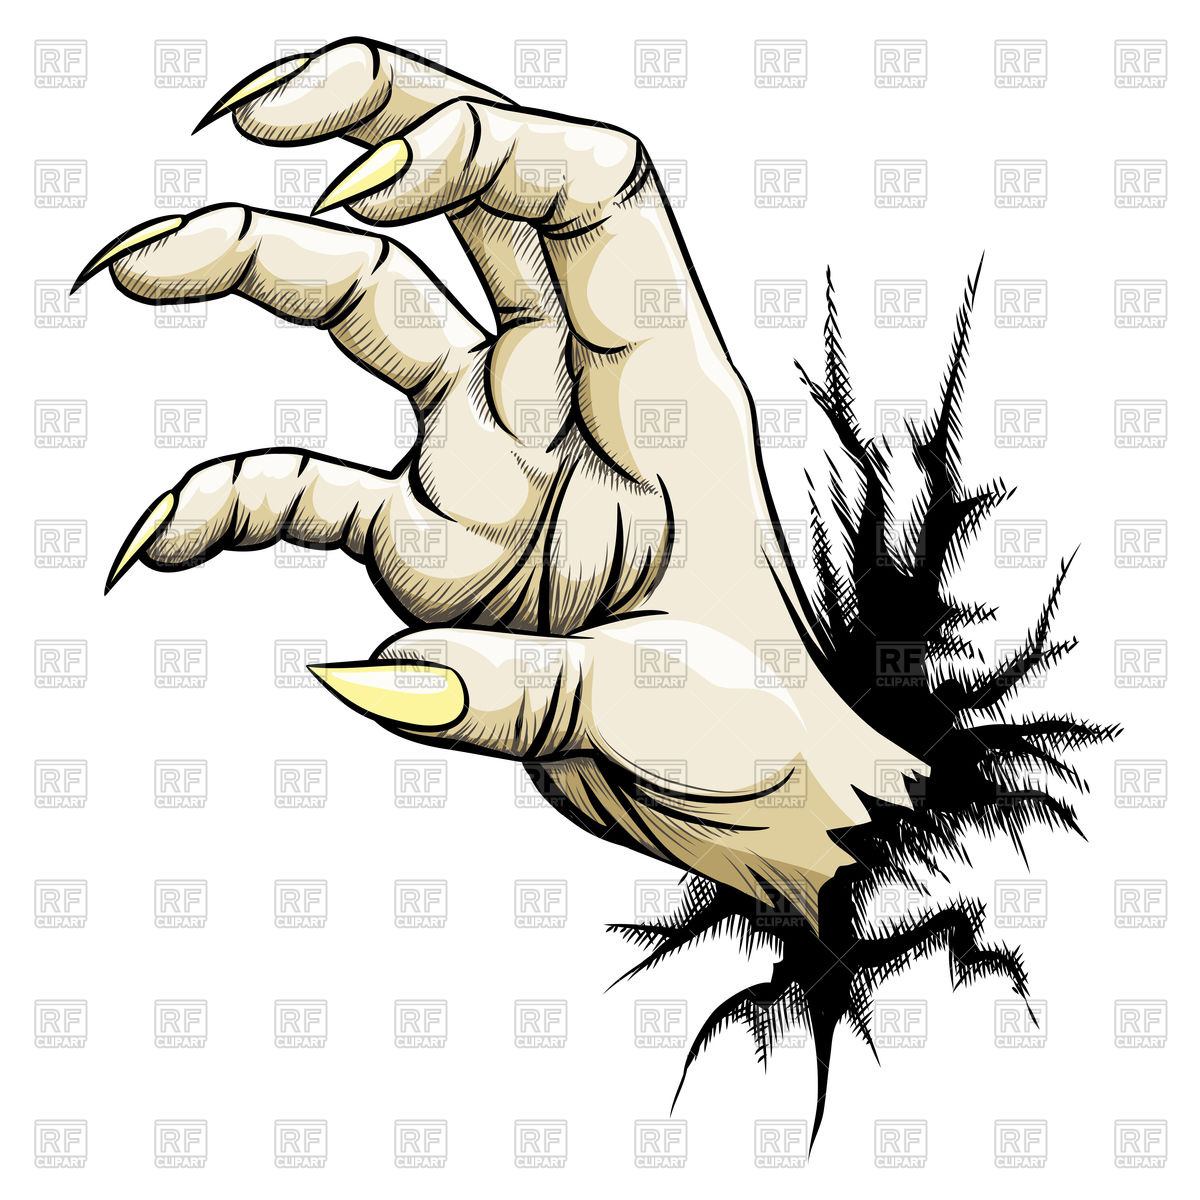 1200x1200 Grabbing Zombie Hand With Claws Vector Image Vector Artwork Of